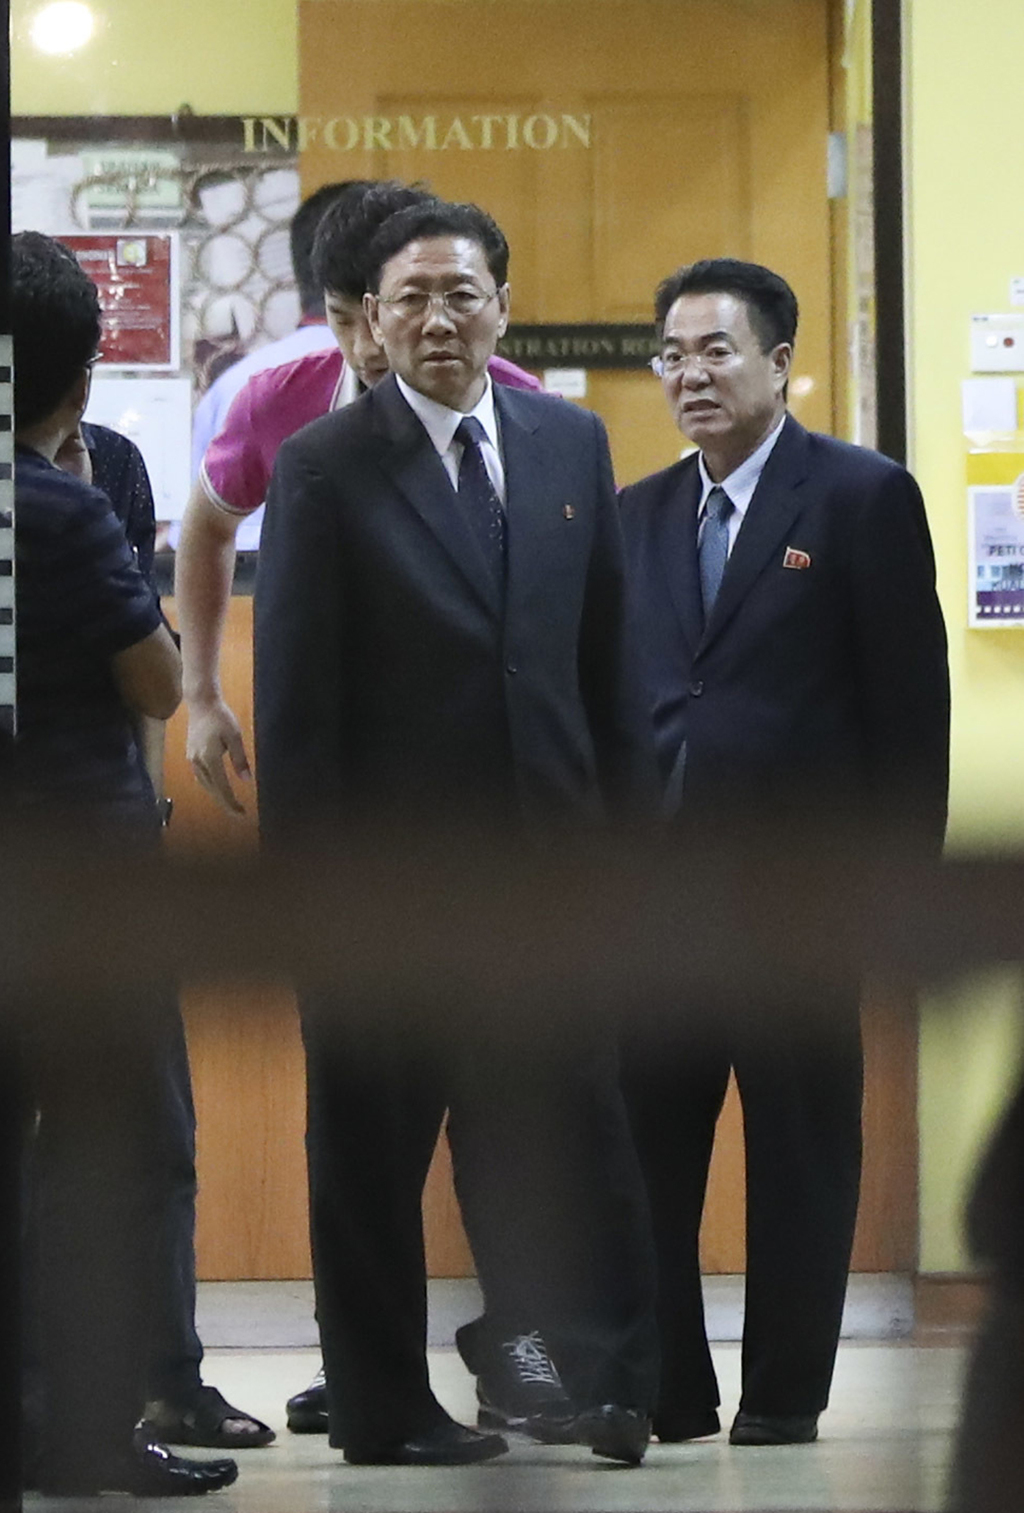 North Korean Ambassador to Malaysia Kang Chol, center, stands at the entrance as he prepares to leave the forensic department at a hosp...